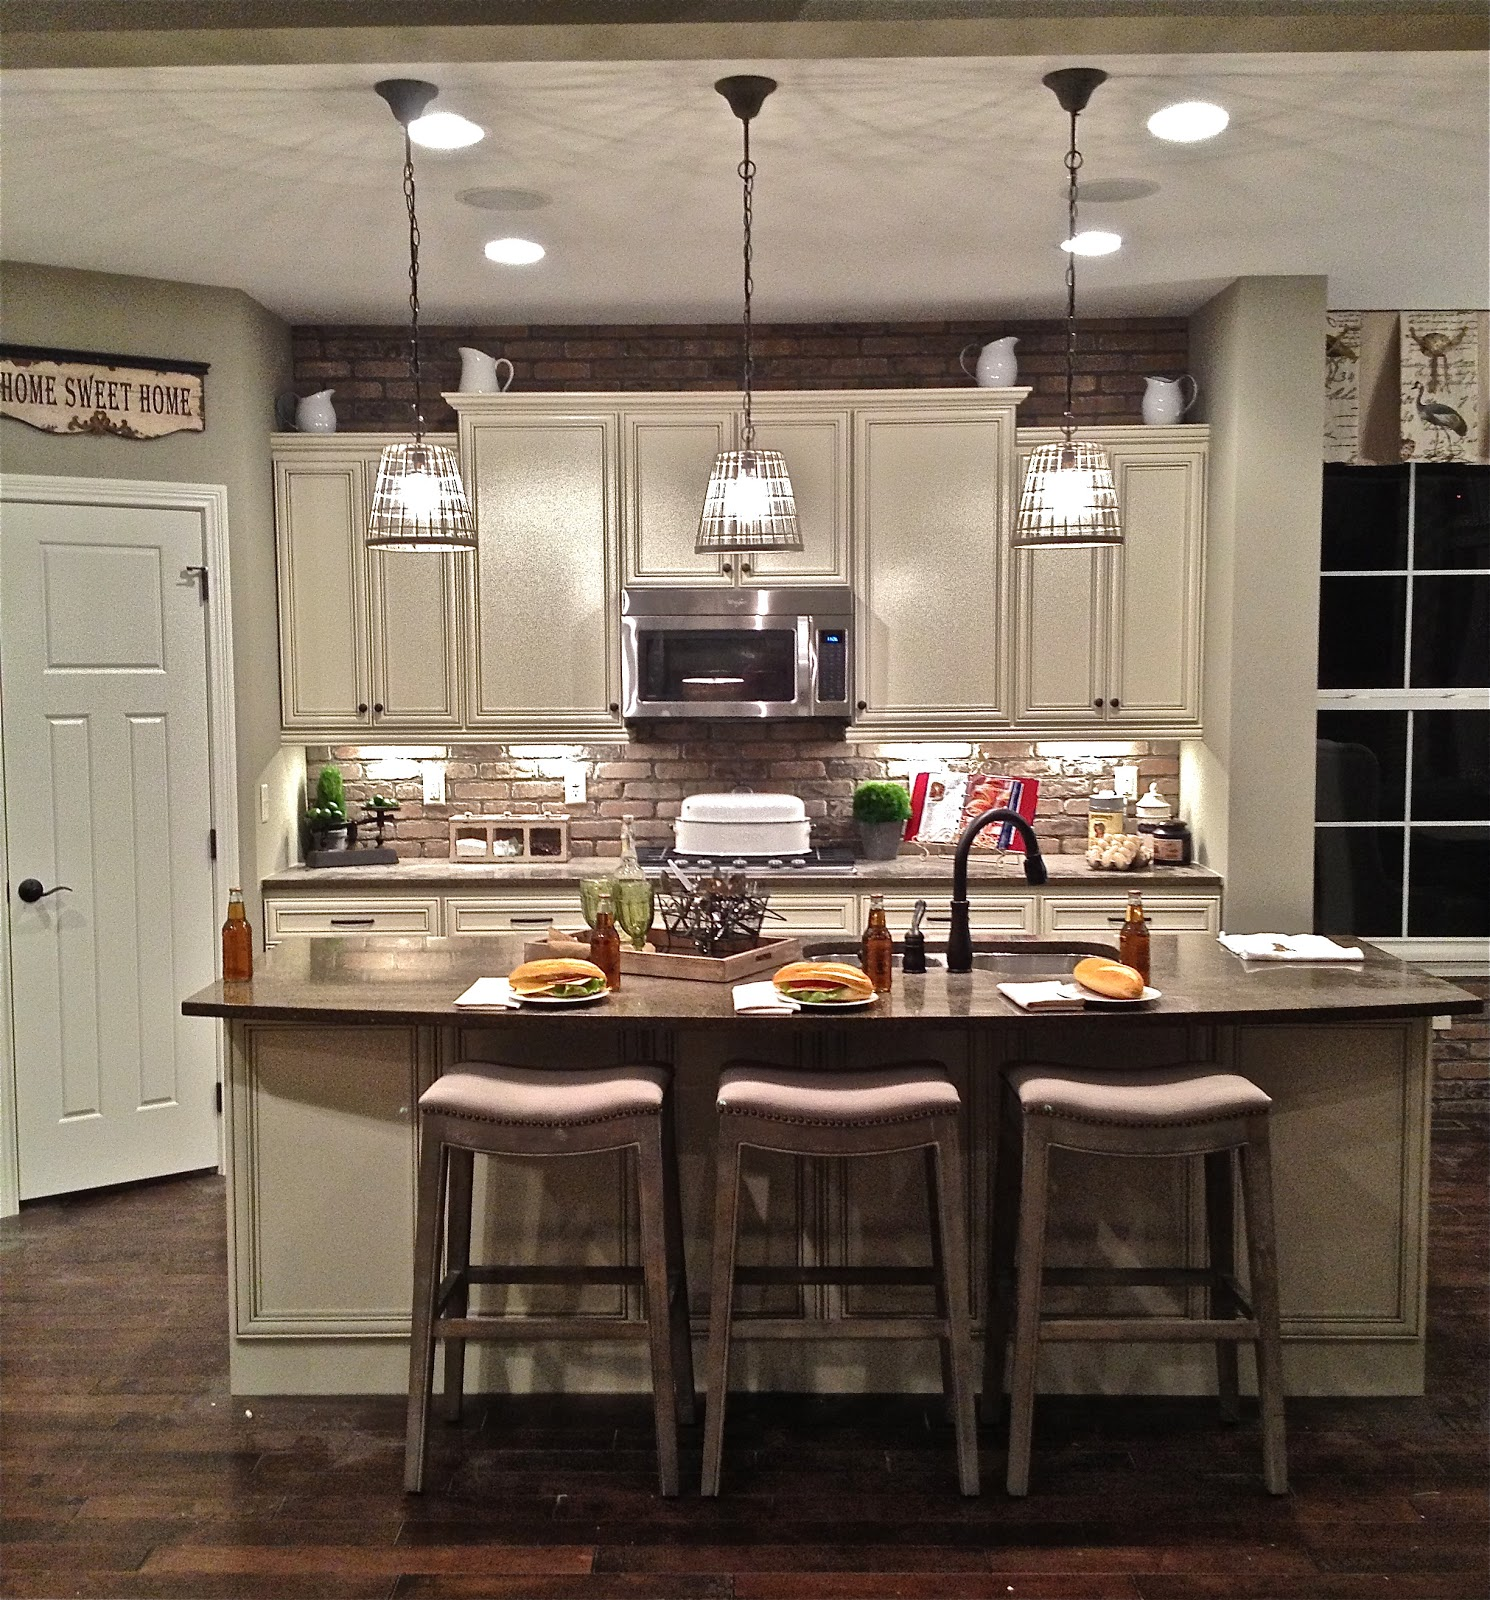 18 amazing kitchen island ideas plus costs roi home - Kitchen led lighting design guidelines ...